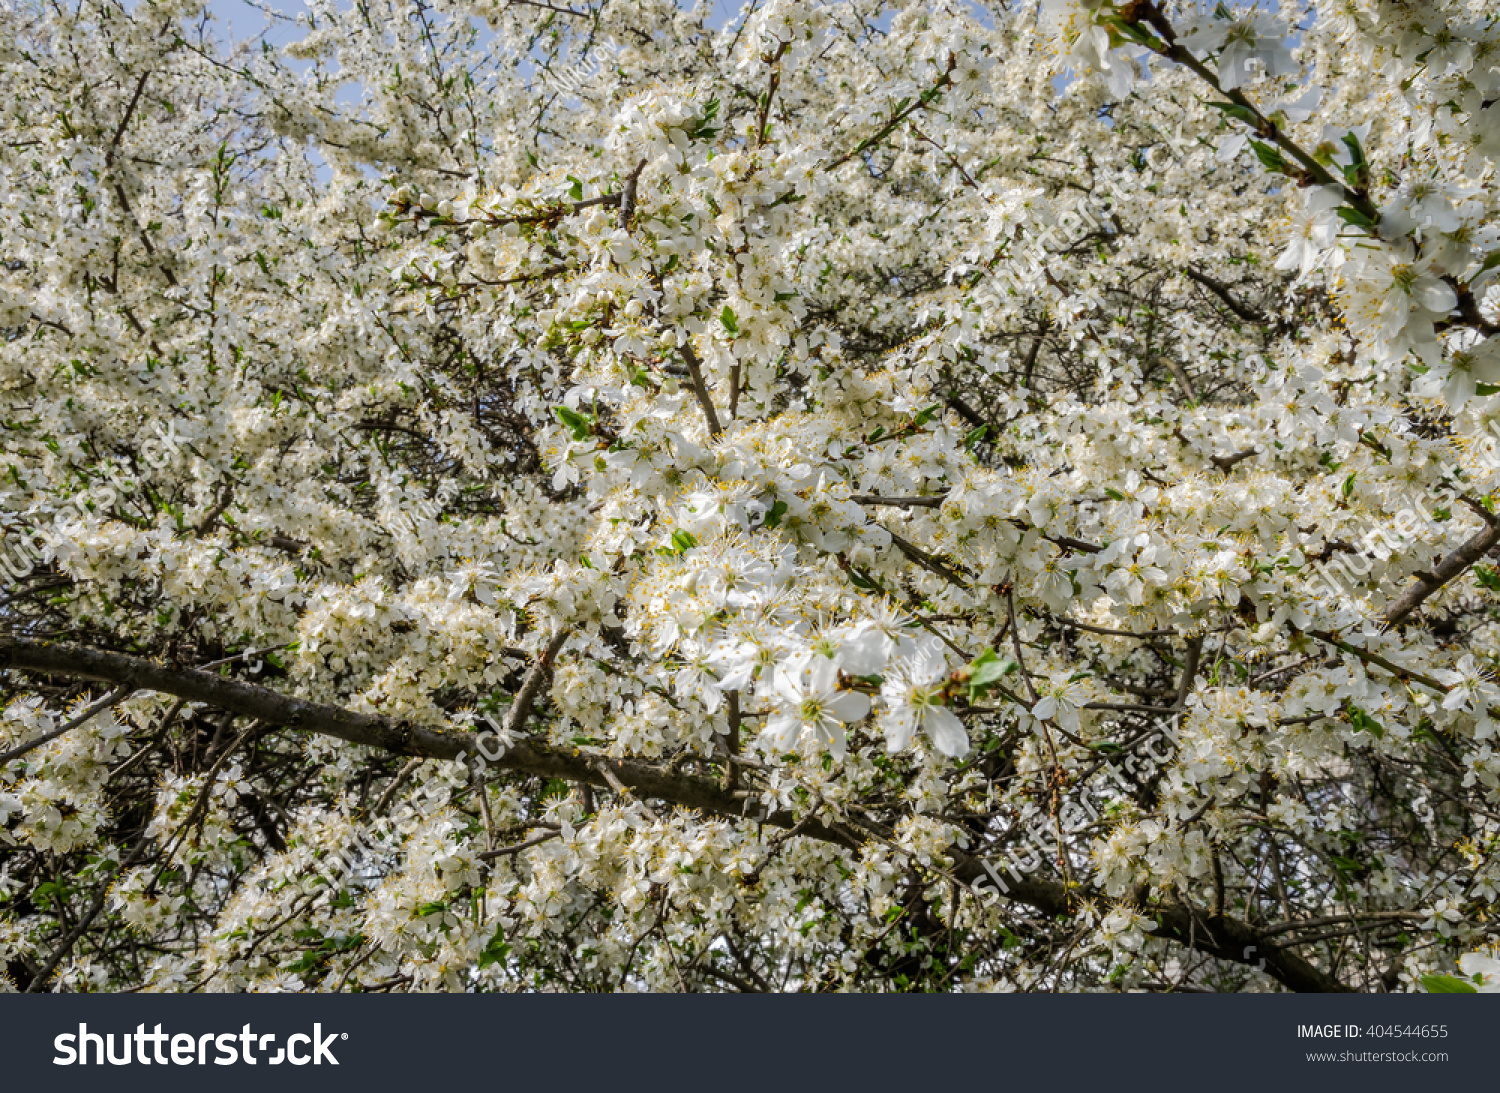 Blooming White Flowers Early Spring Apple Stock Photo Image